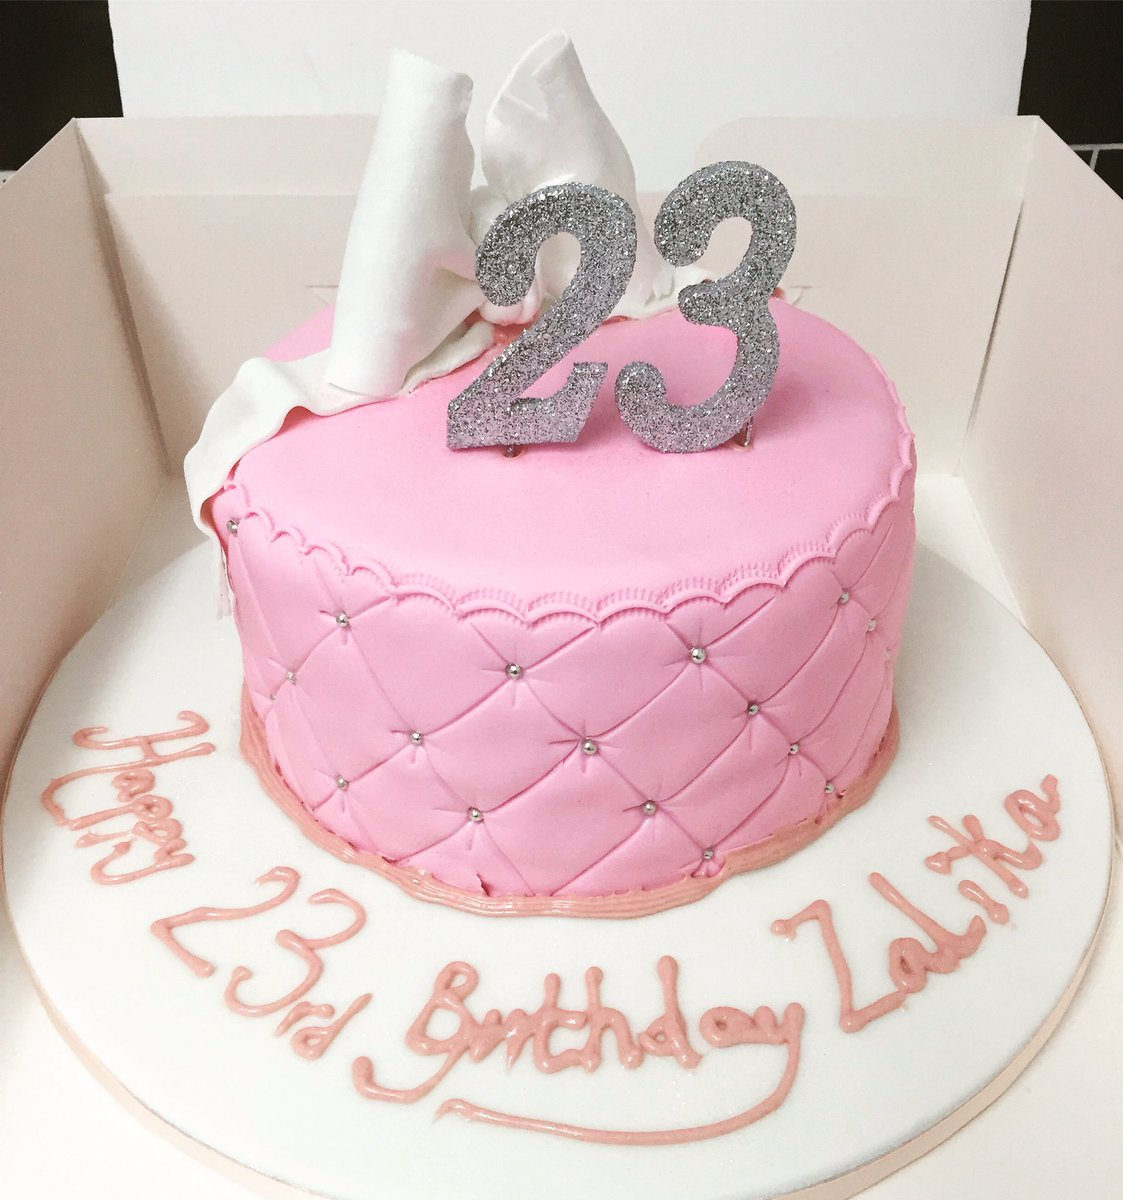 Keisha cake on twitter cakes i baked 23rd birthday cake pretty keisha cake on twitter cakes i baked 23rd birthday cake pretty bow cake 23 today birthday instagram caketoday thecheapjerseys Images